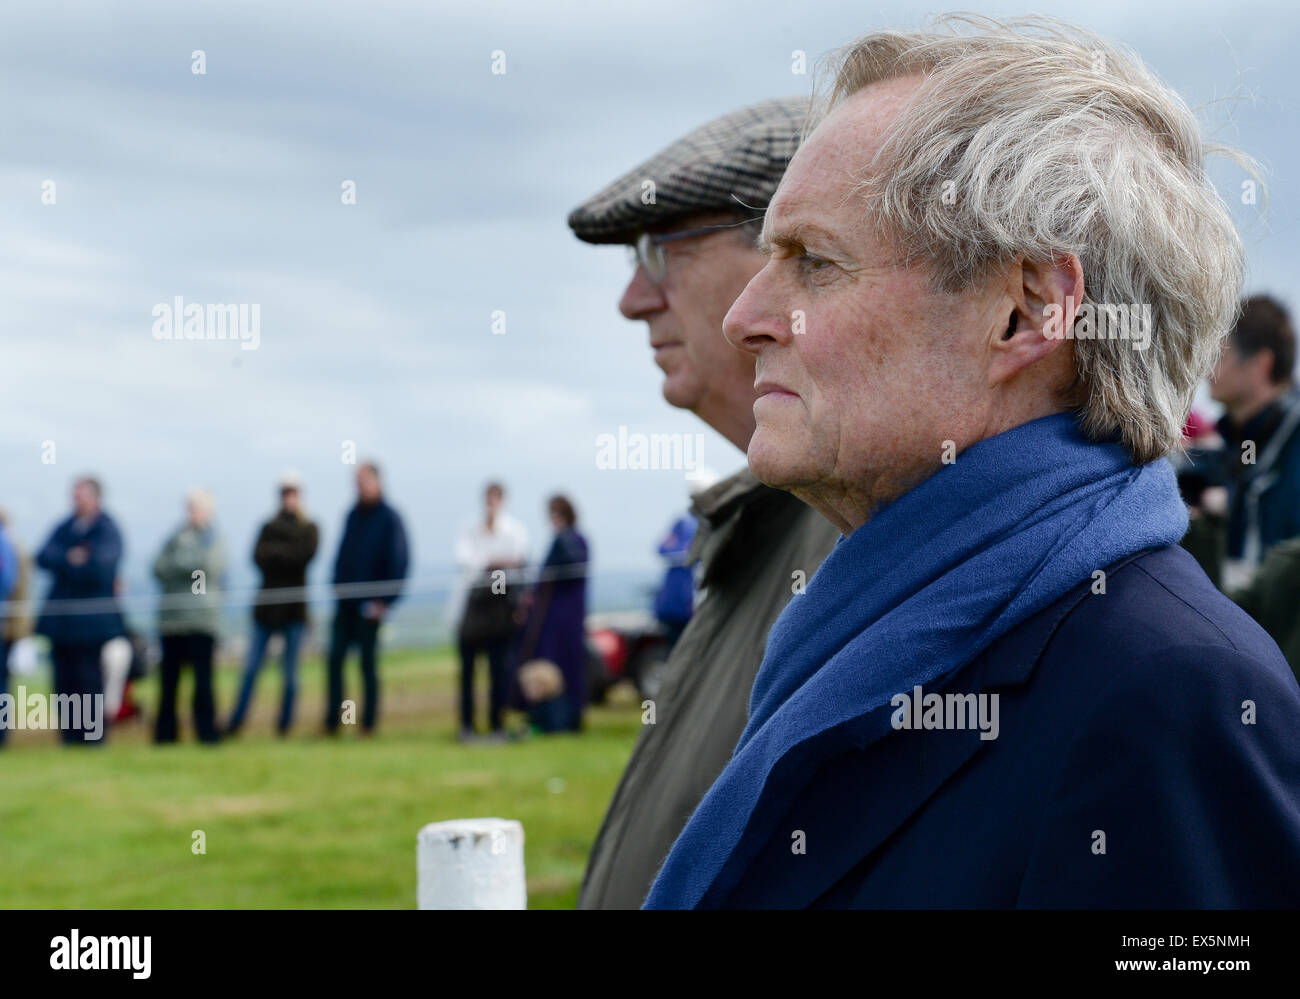 The 9th Duke of Wellington with Lord Ashcroft at the 200th anniversary of Waterloo at Penielheugh in the Scottish - Stock Image